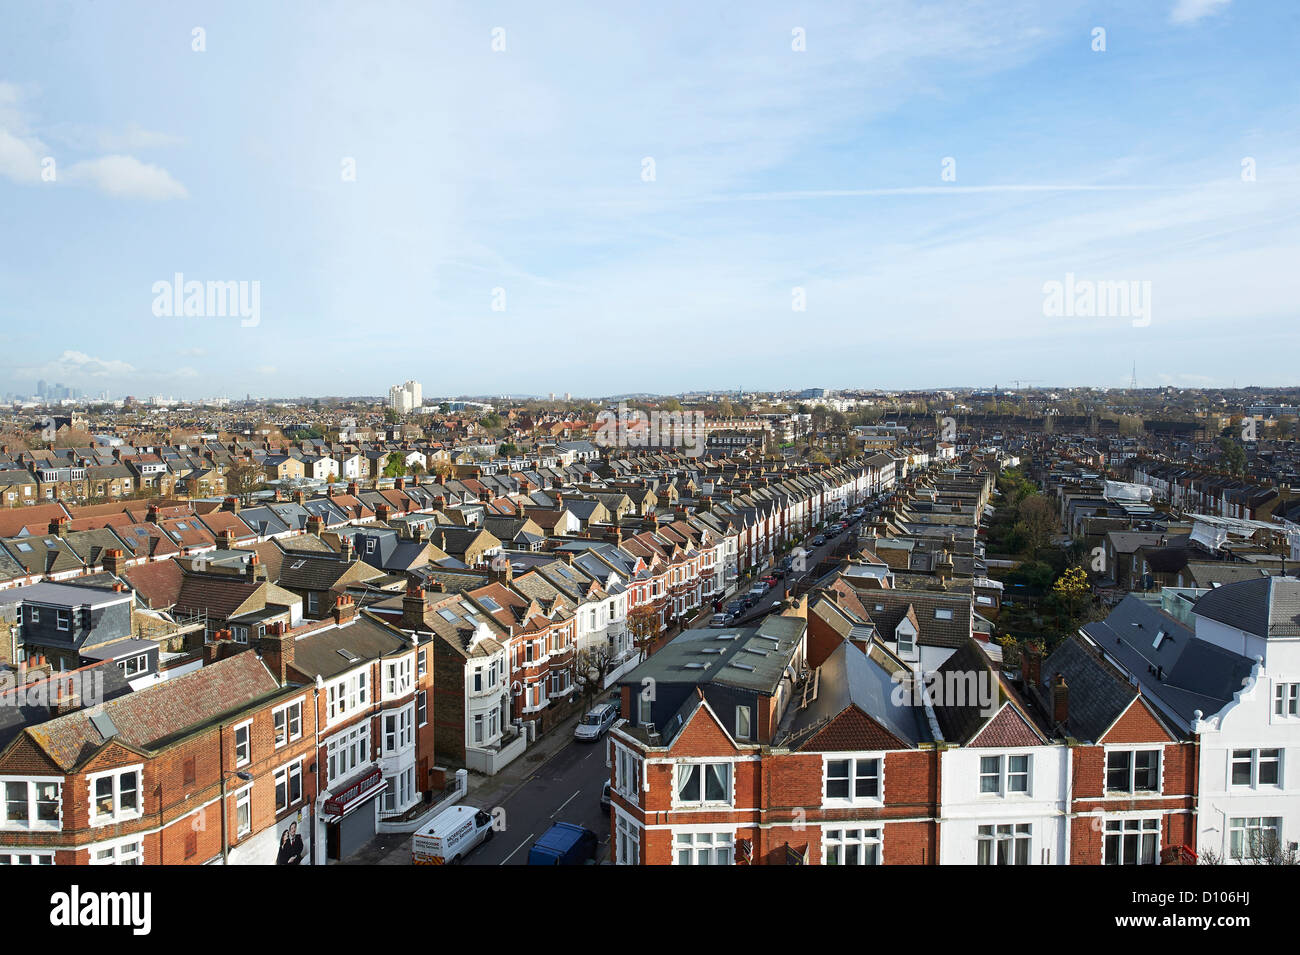 Rooftops of Balham, West London, UK - Stock Image